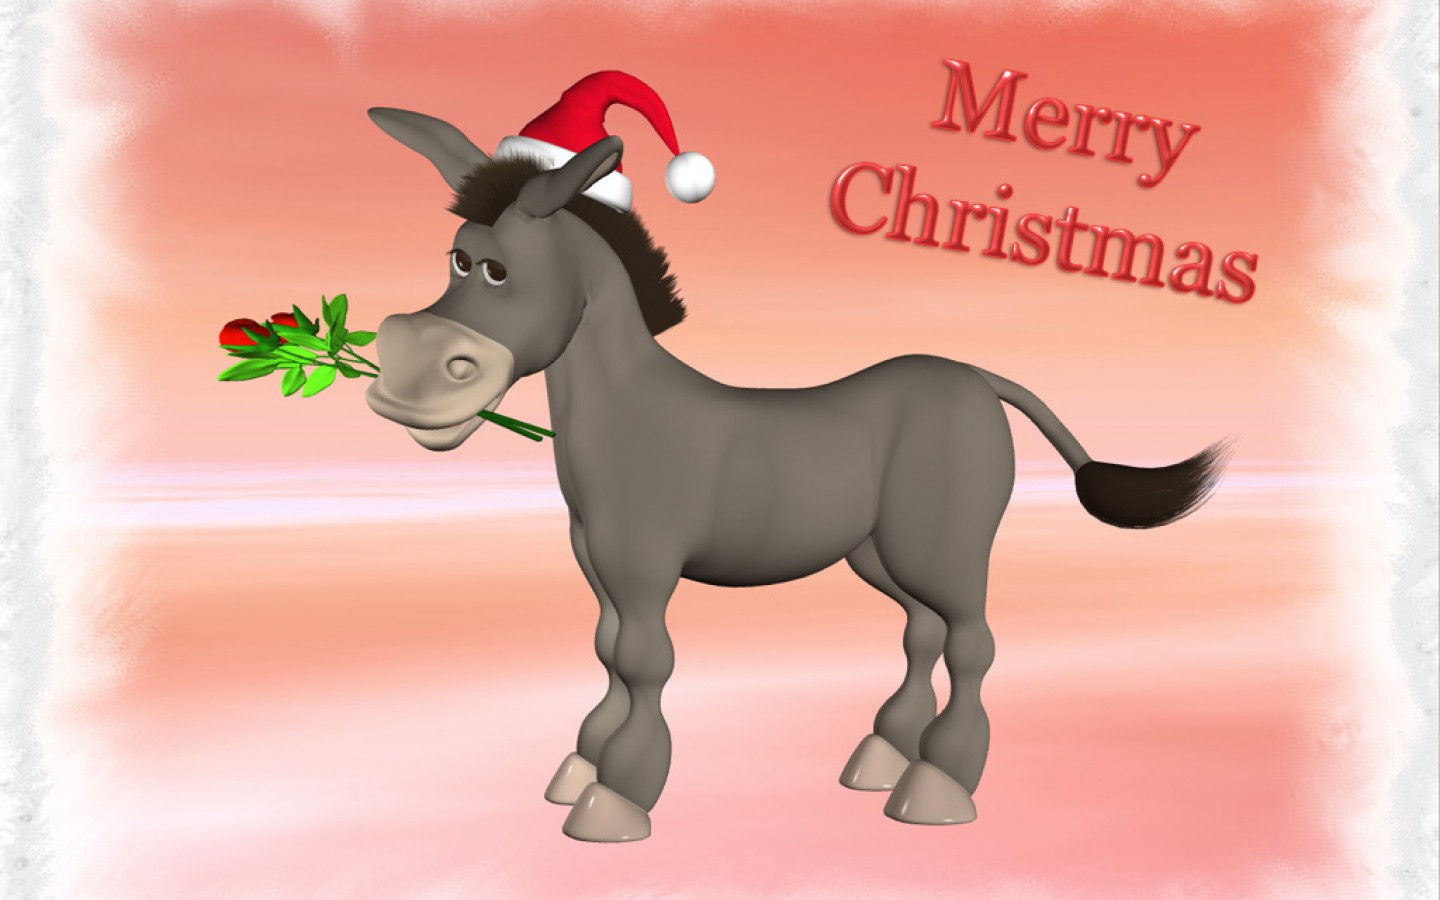 Christmas Donkey 23931 HD Wallpaper